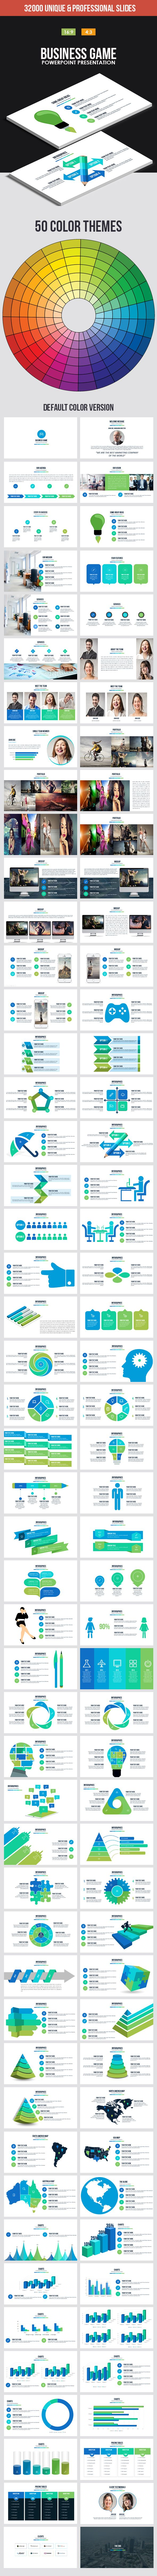 Business Game Powerpoint Template - Business PowerPoint Templates